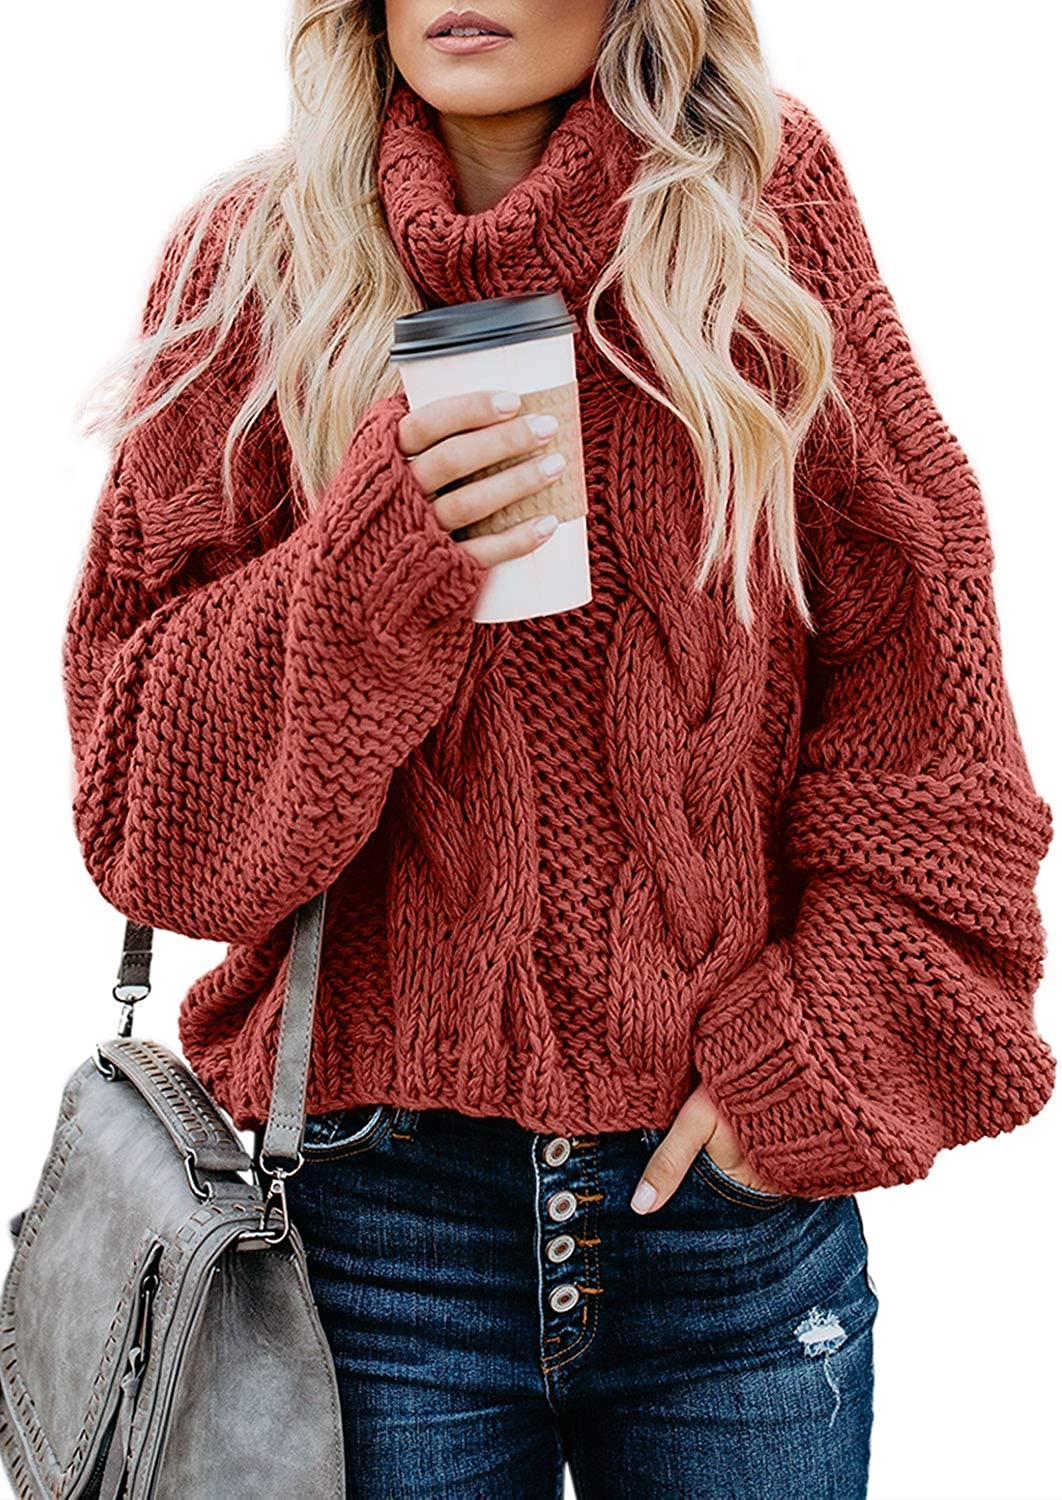 FARYSAYS Women's Casual Turtleneck Long Sleeve Loose Chunky Cable Knit Pullover Sweater Outerwear